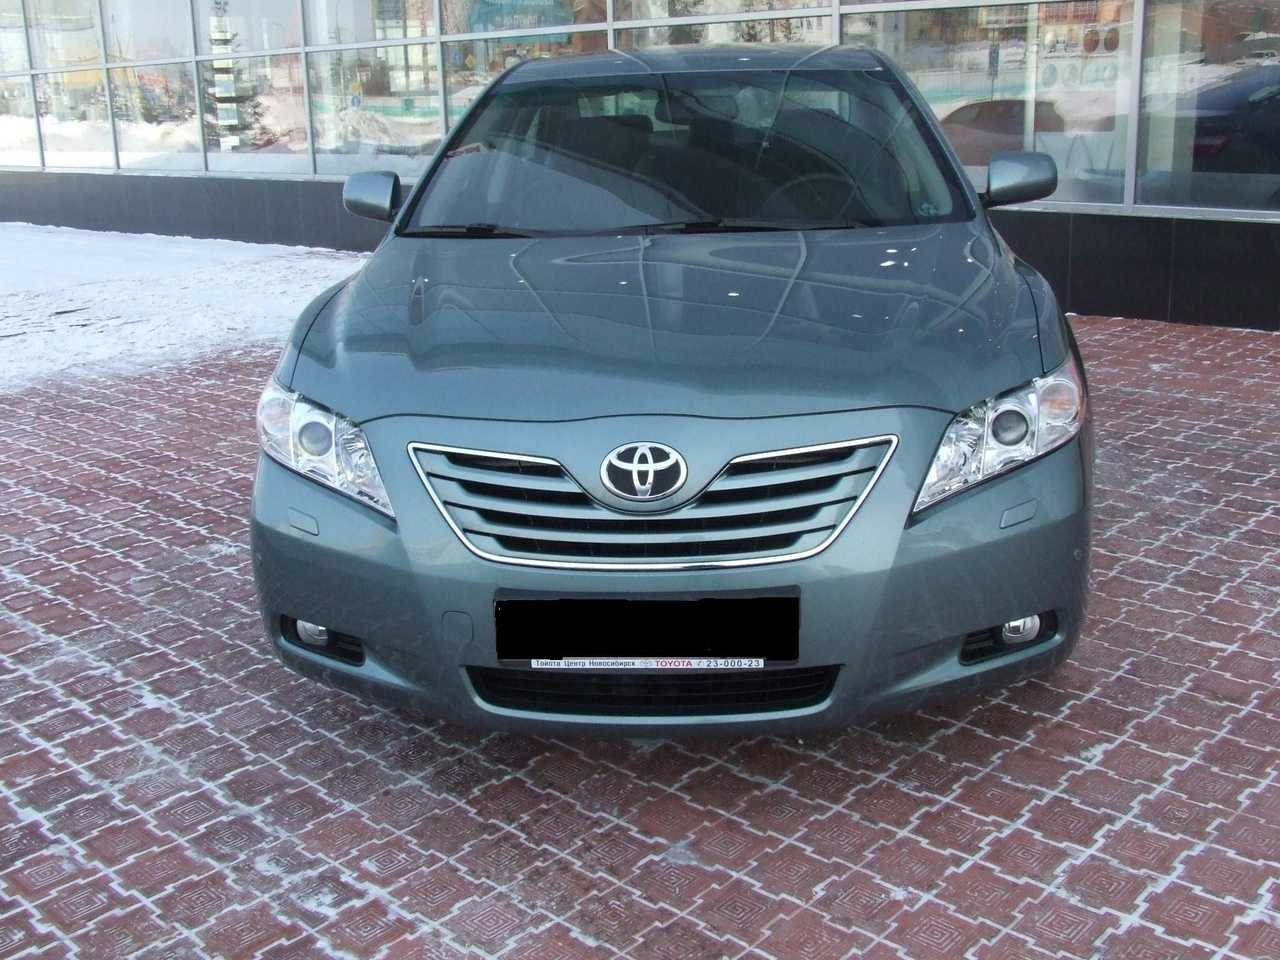 2008 toyota camry pictures gasoline ff automatic. Black Bedroom Furniture Sets. Home Design Ideas